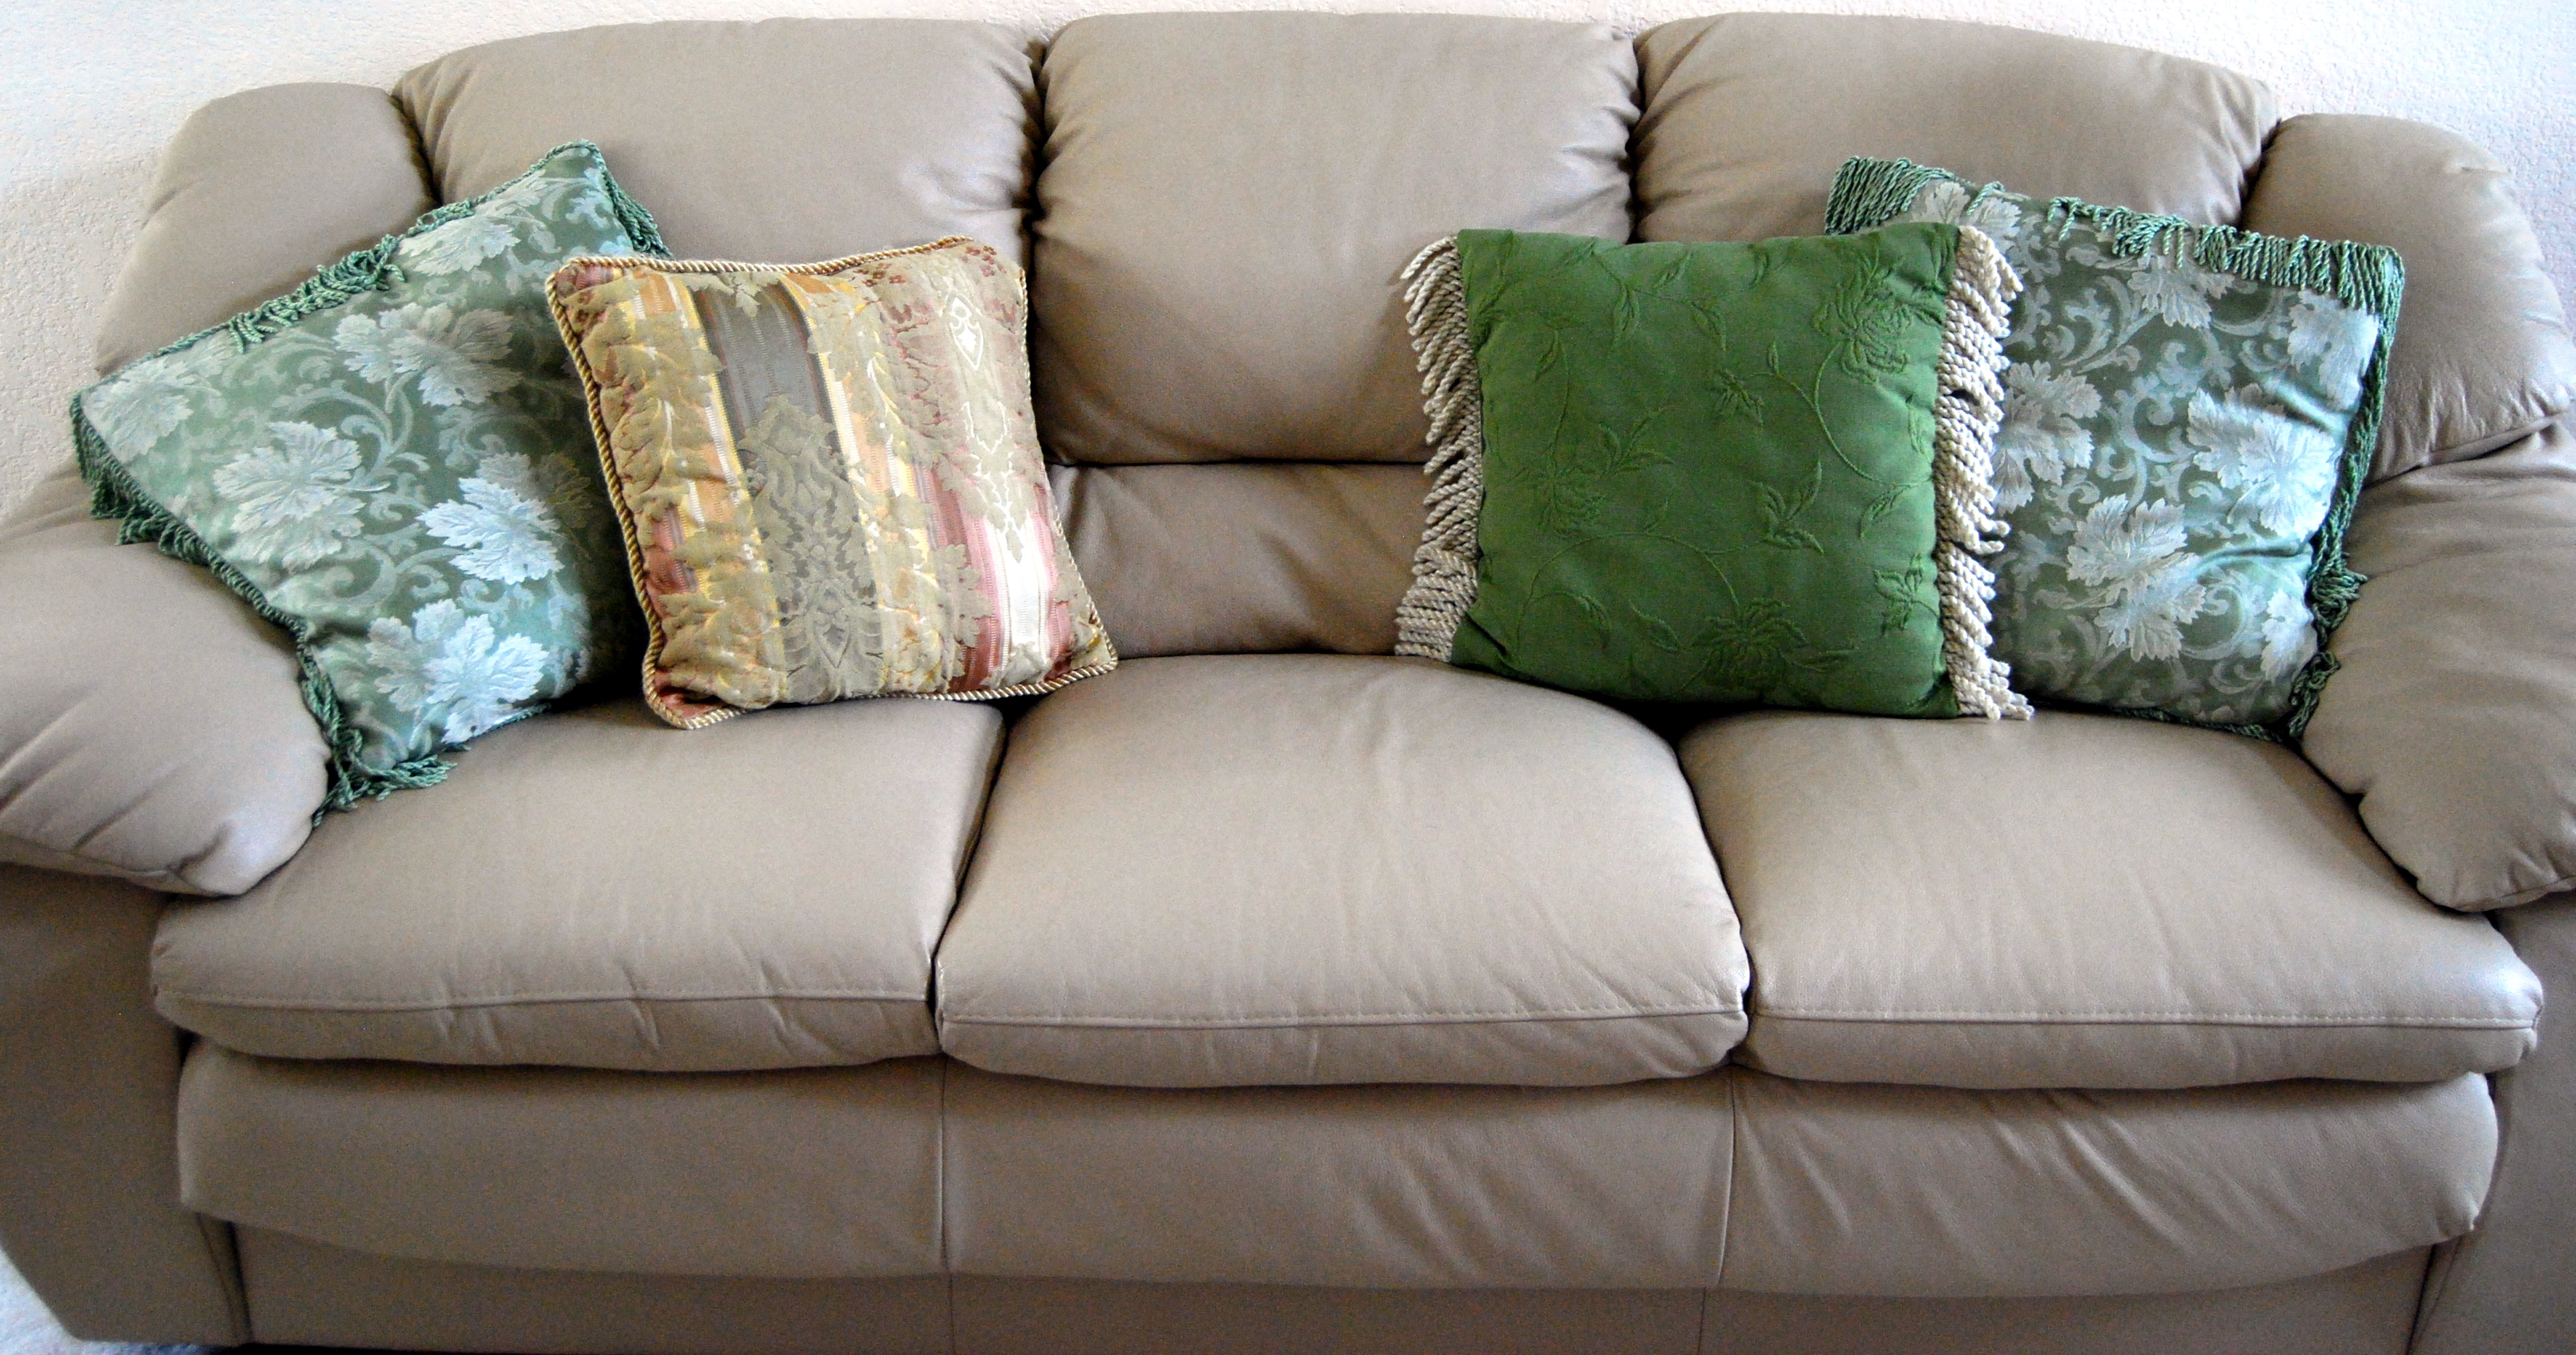 Three-seat solid color sofa cover